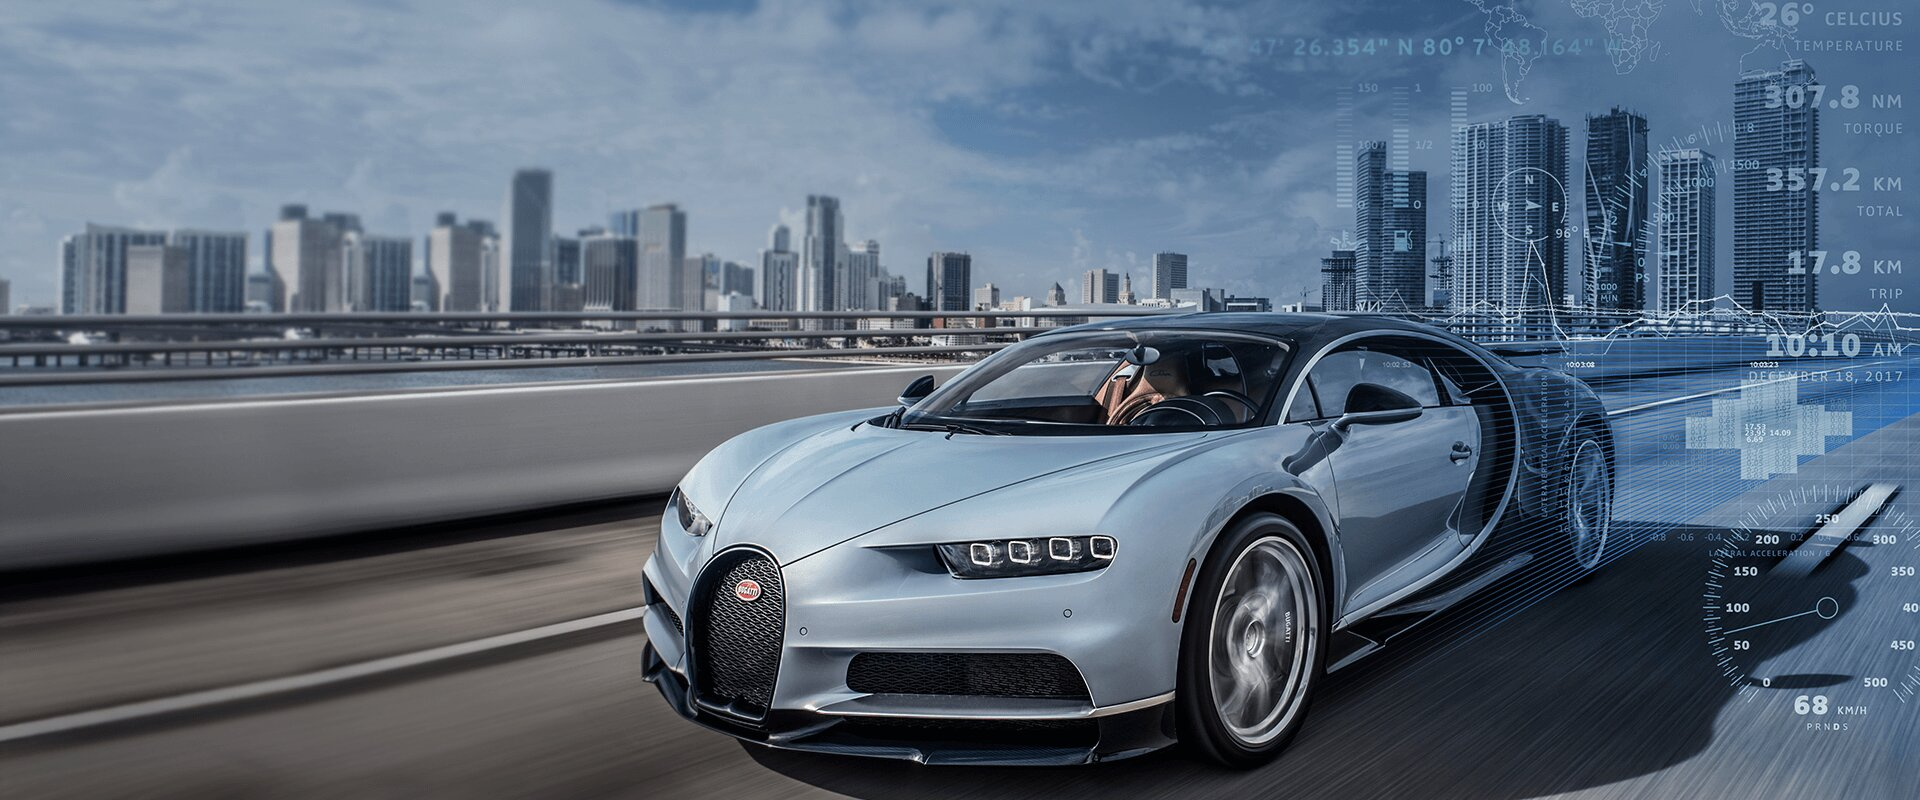 Bugatti Connected Car